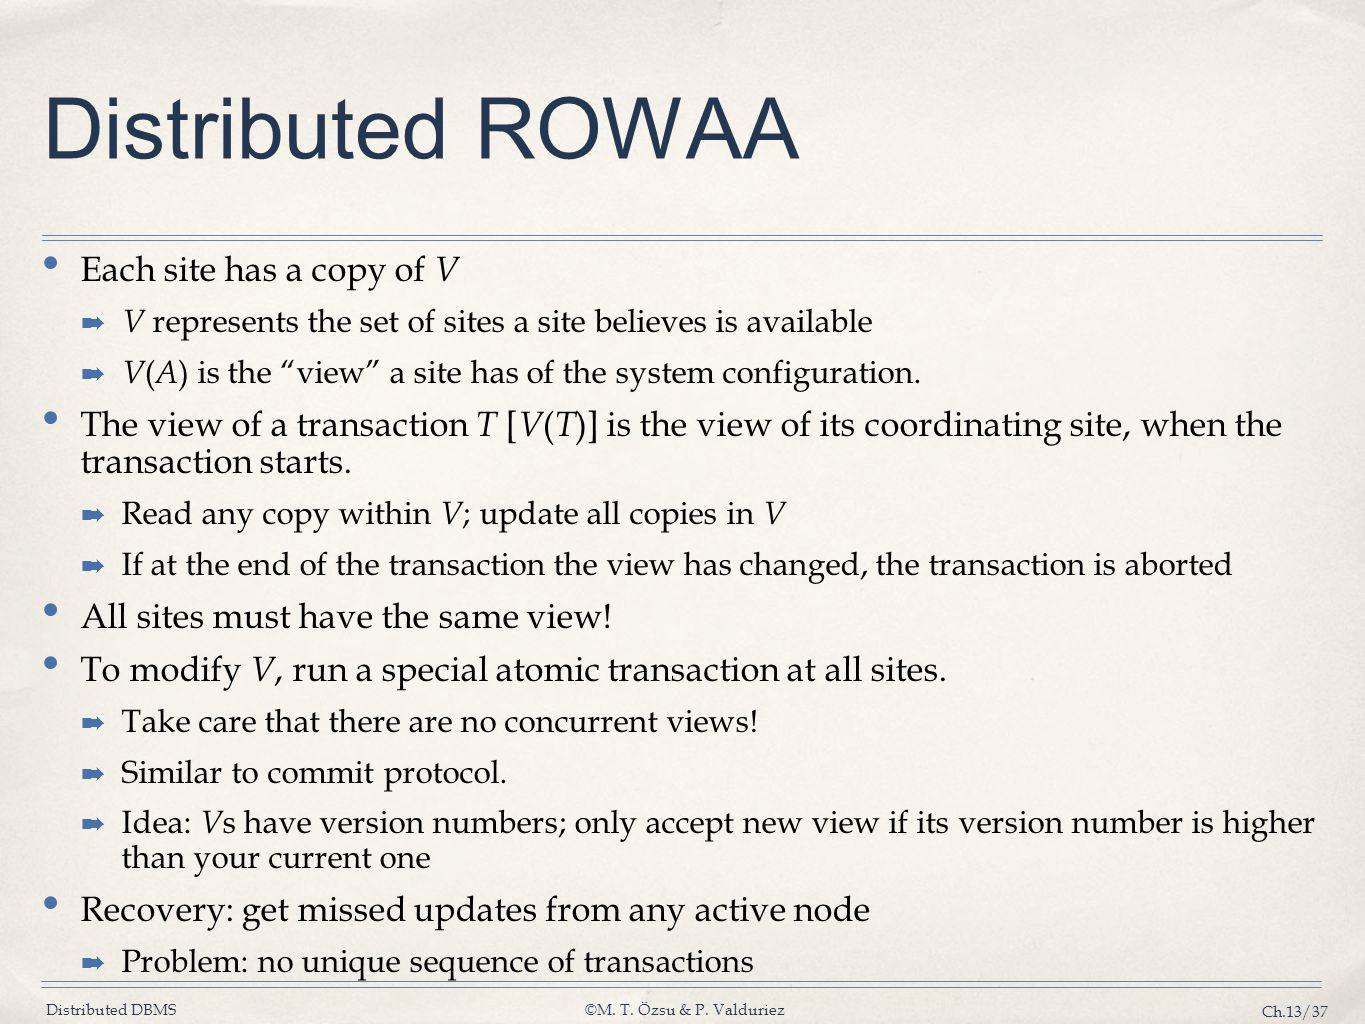 Distributed DBMS©M. T. Özsu & P. Valduriez Ch.13/37 Distributed ROWAA Each site has a copy of V ➡ V represents the set of sites a site believes is ava